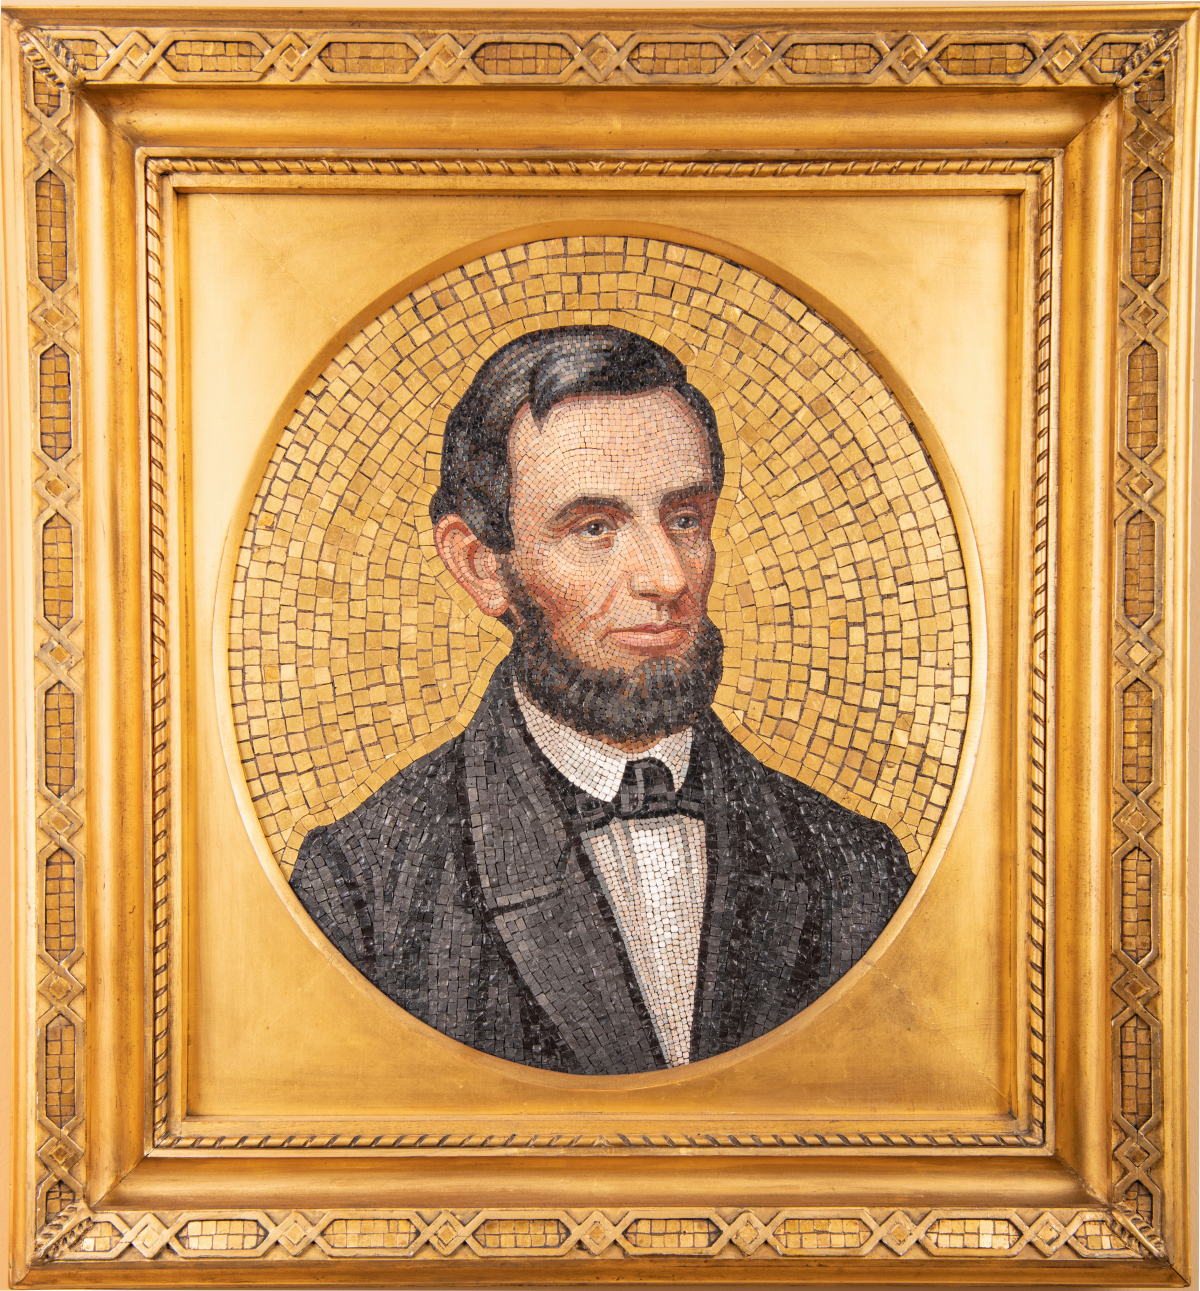 A portrait of Abraham Lincoln made from glass mosaic tiles.